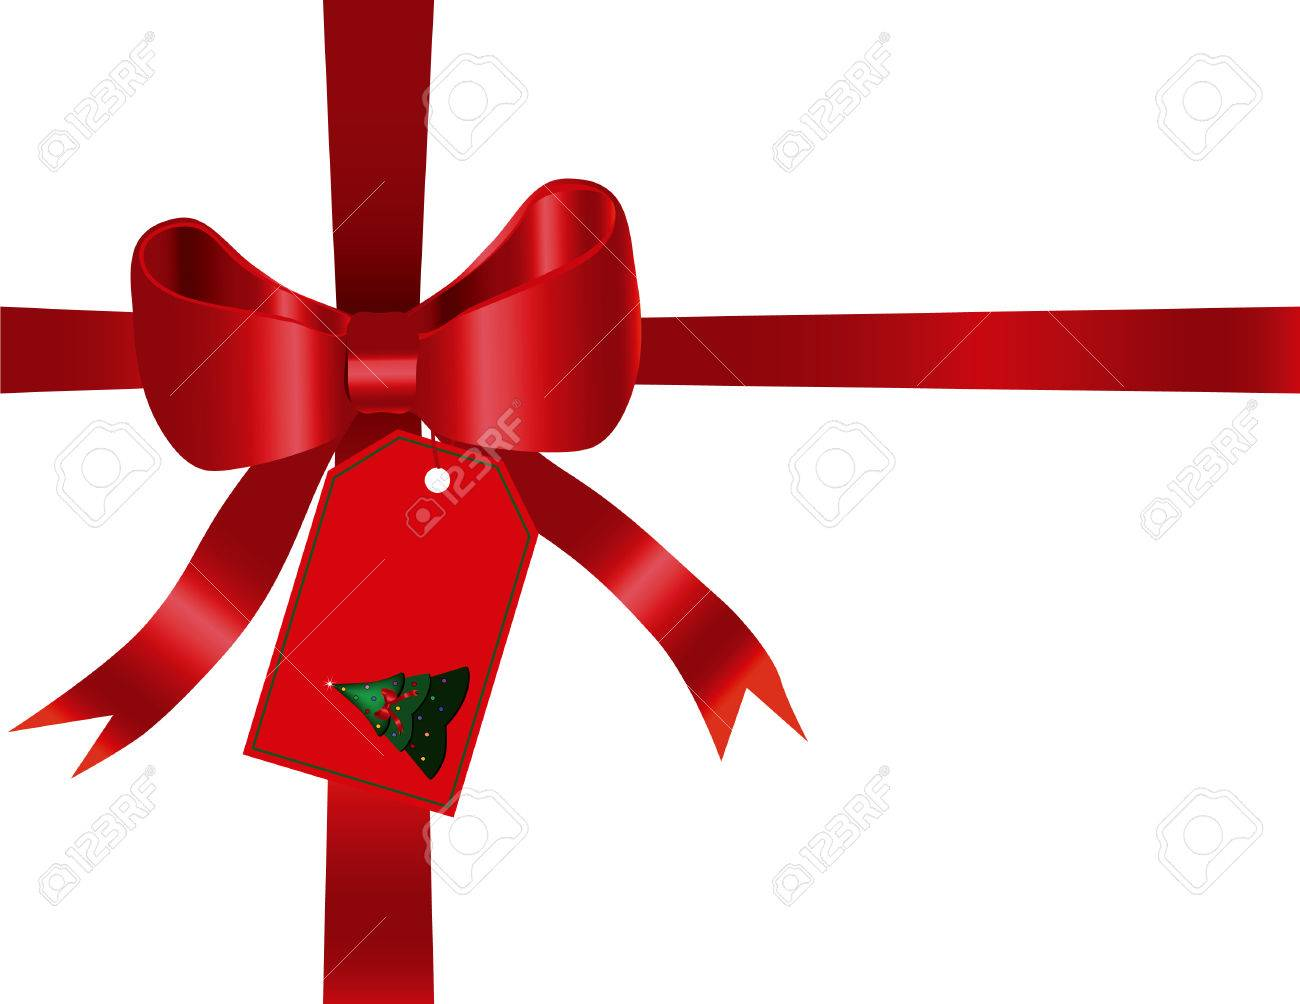 Red gift bow and ribbon designed in illustrator red gift bow and ribbon designed in illustrator 3923703 negle Choice Image